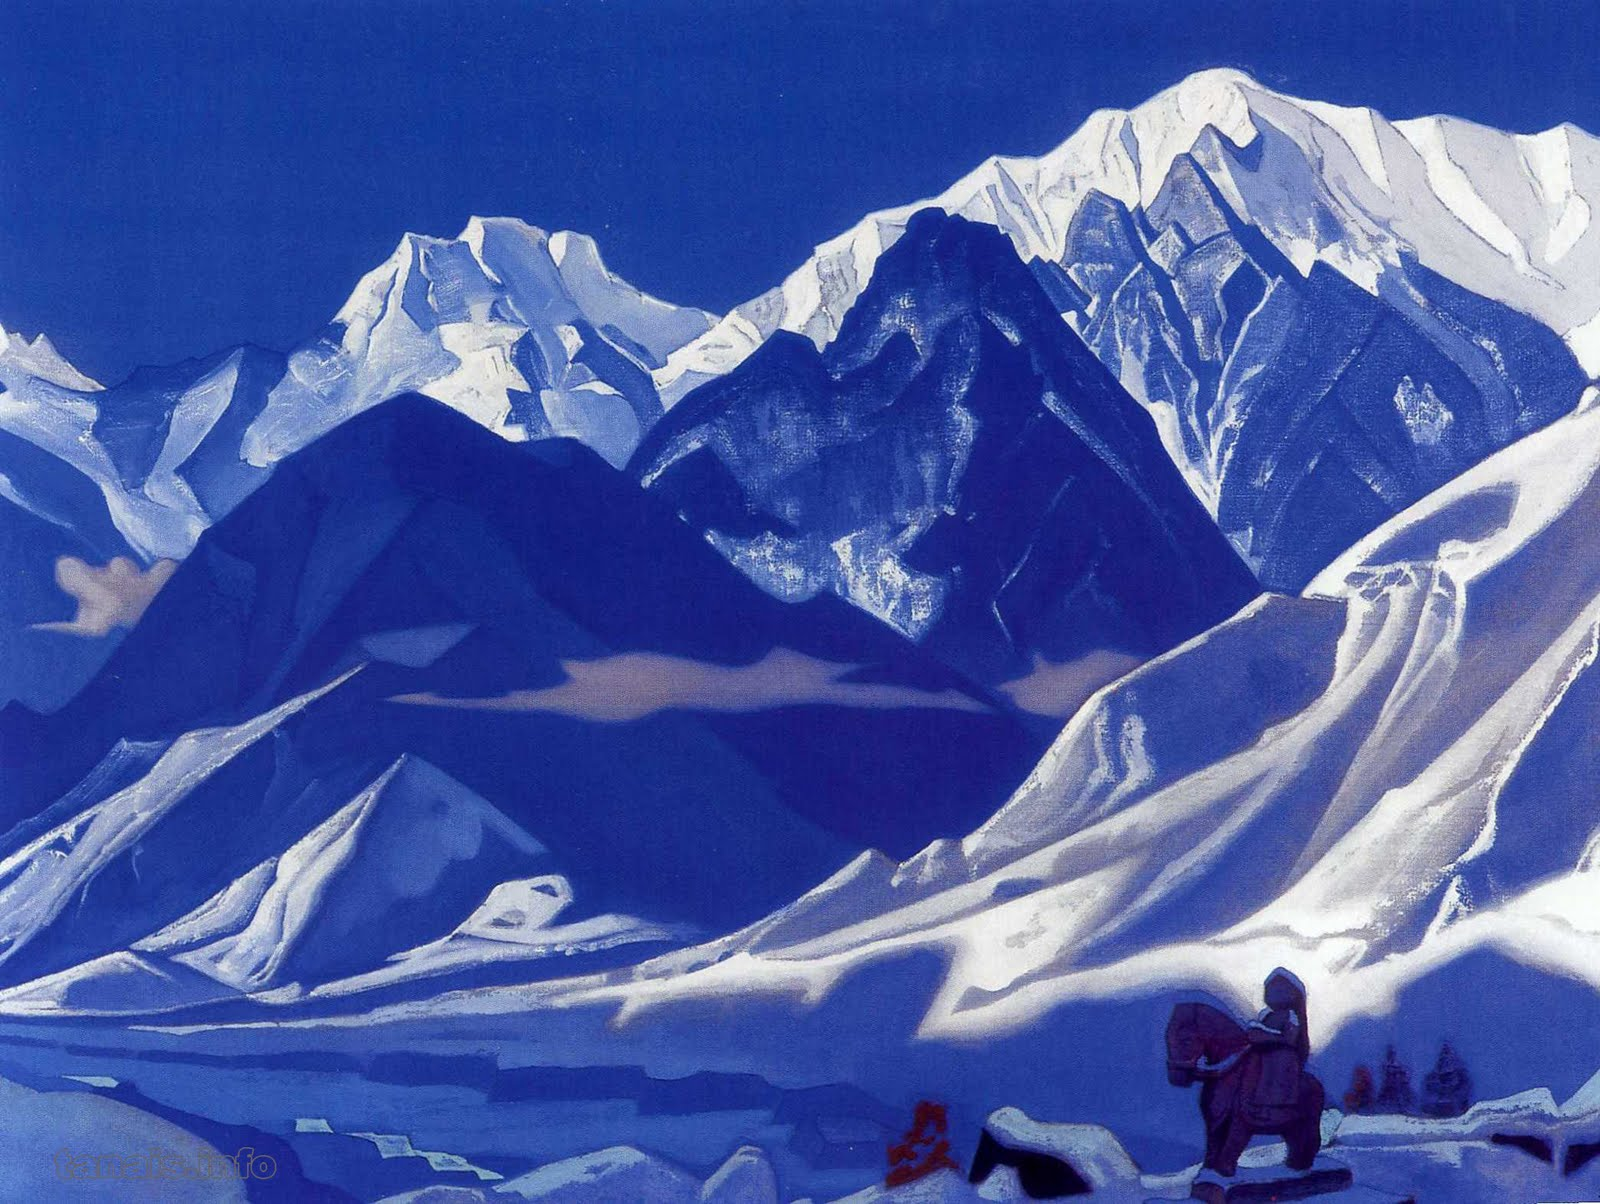 Himalaya clipart A CARRY COMPASS: Roerich's Roerich's